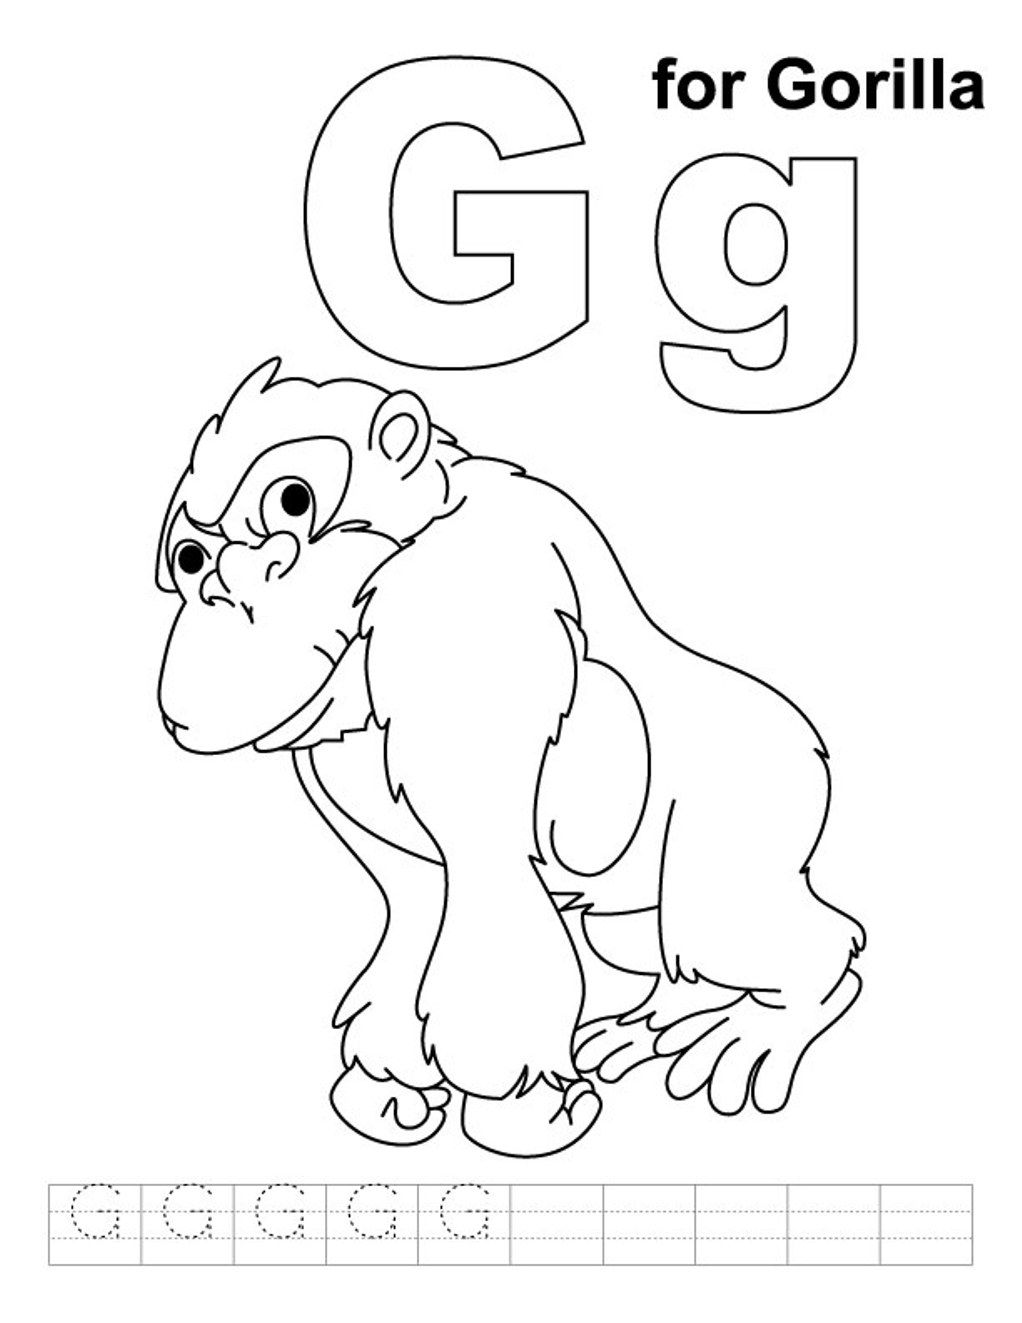 Coloring Pages Alphabet G For Gorilla